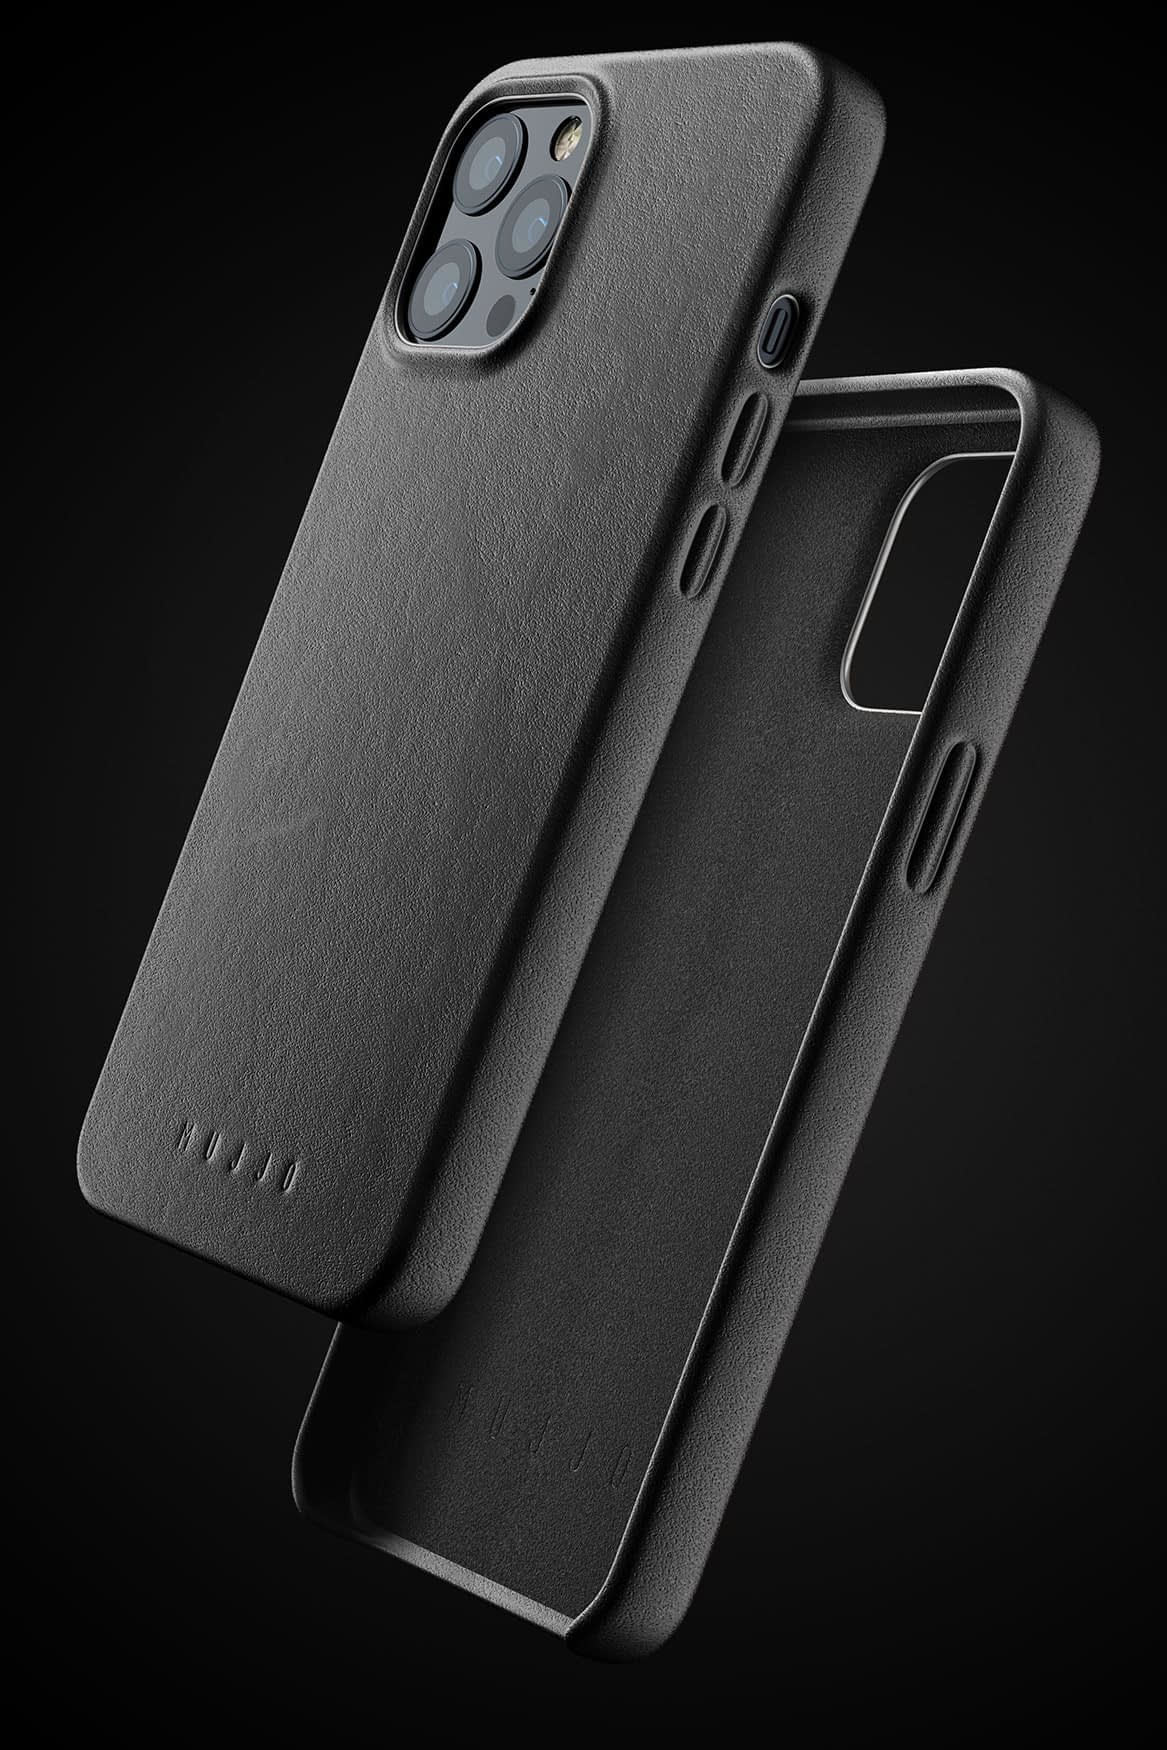 Full Leather Case for iPhone 12 Pro Max Black 01